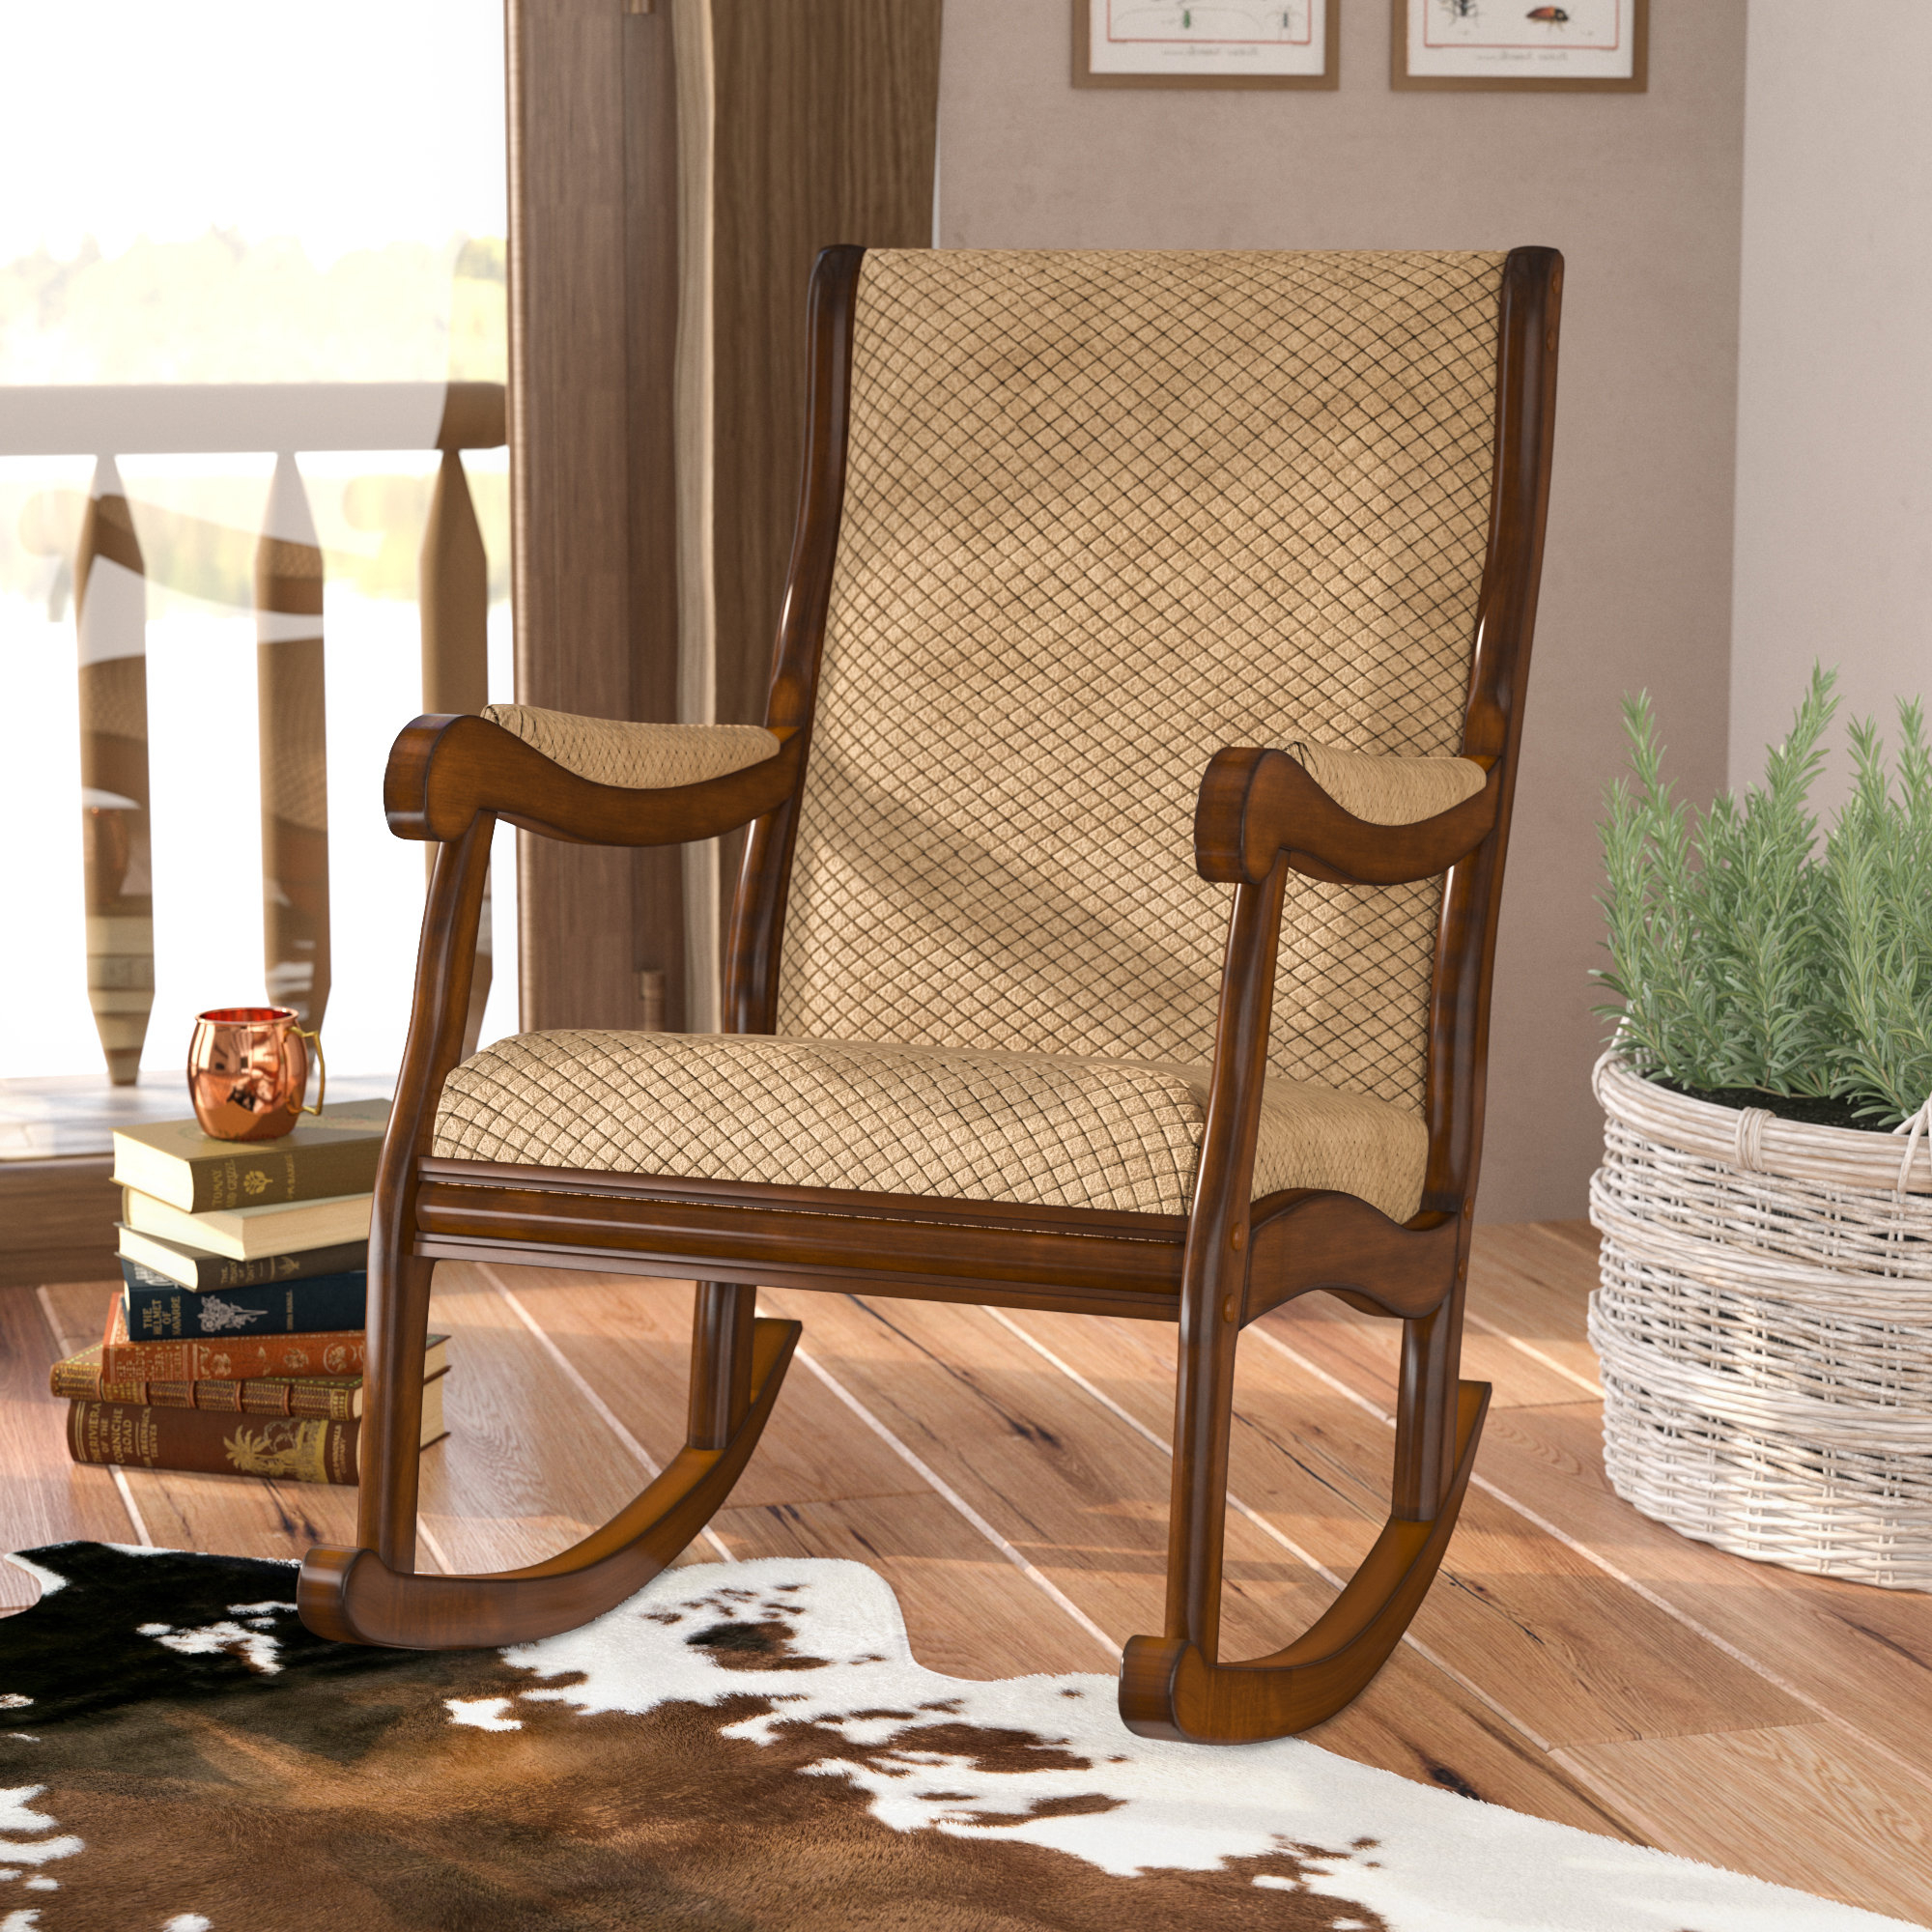 Berg Rocking Chair Intended For Faux Leather Upholstered Wooden Rocking Chairs With Looped Arms, Brown (View 1 of 20)